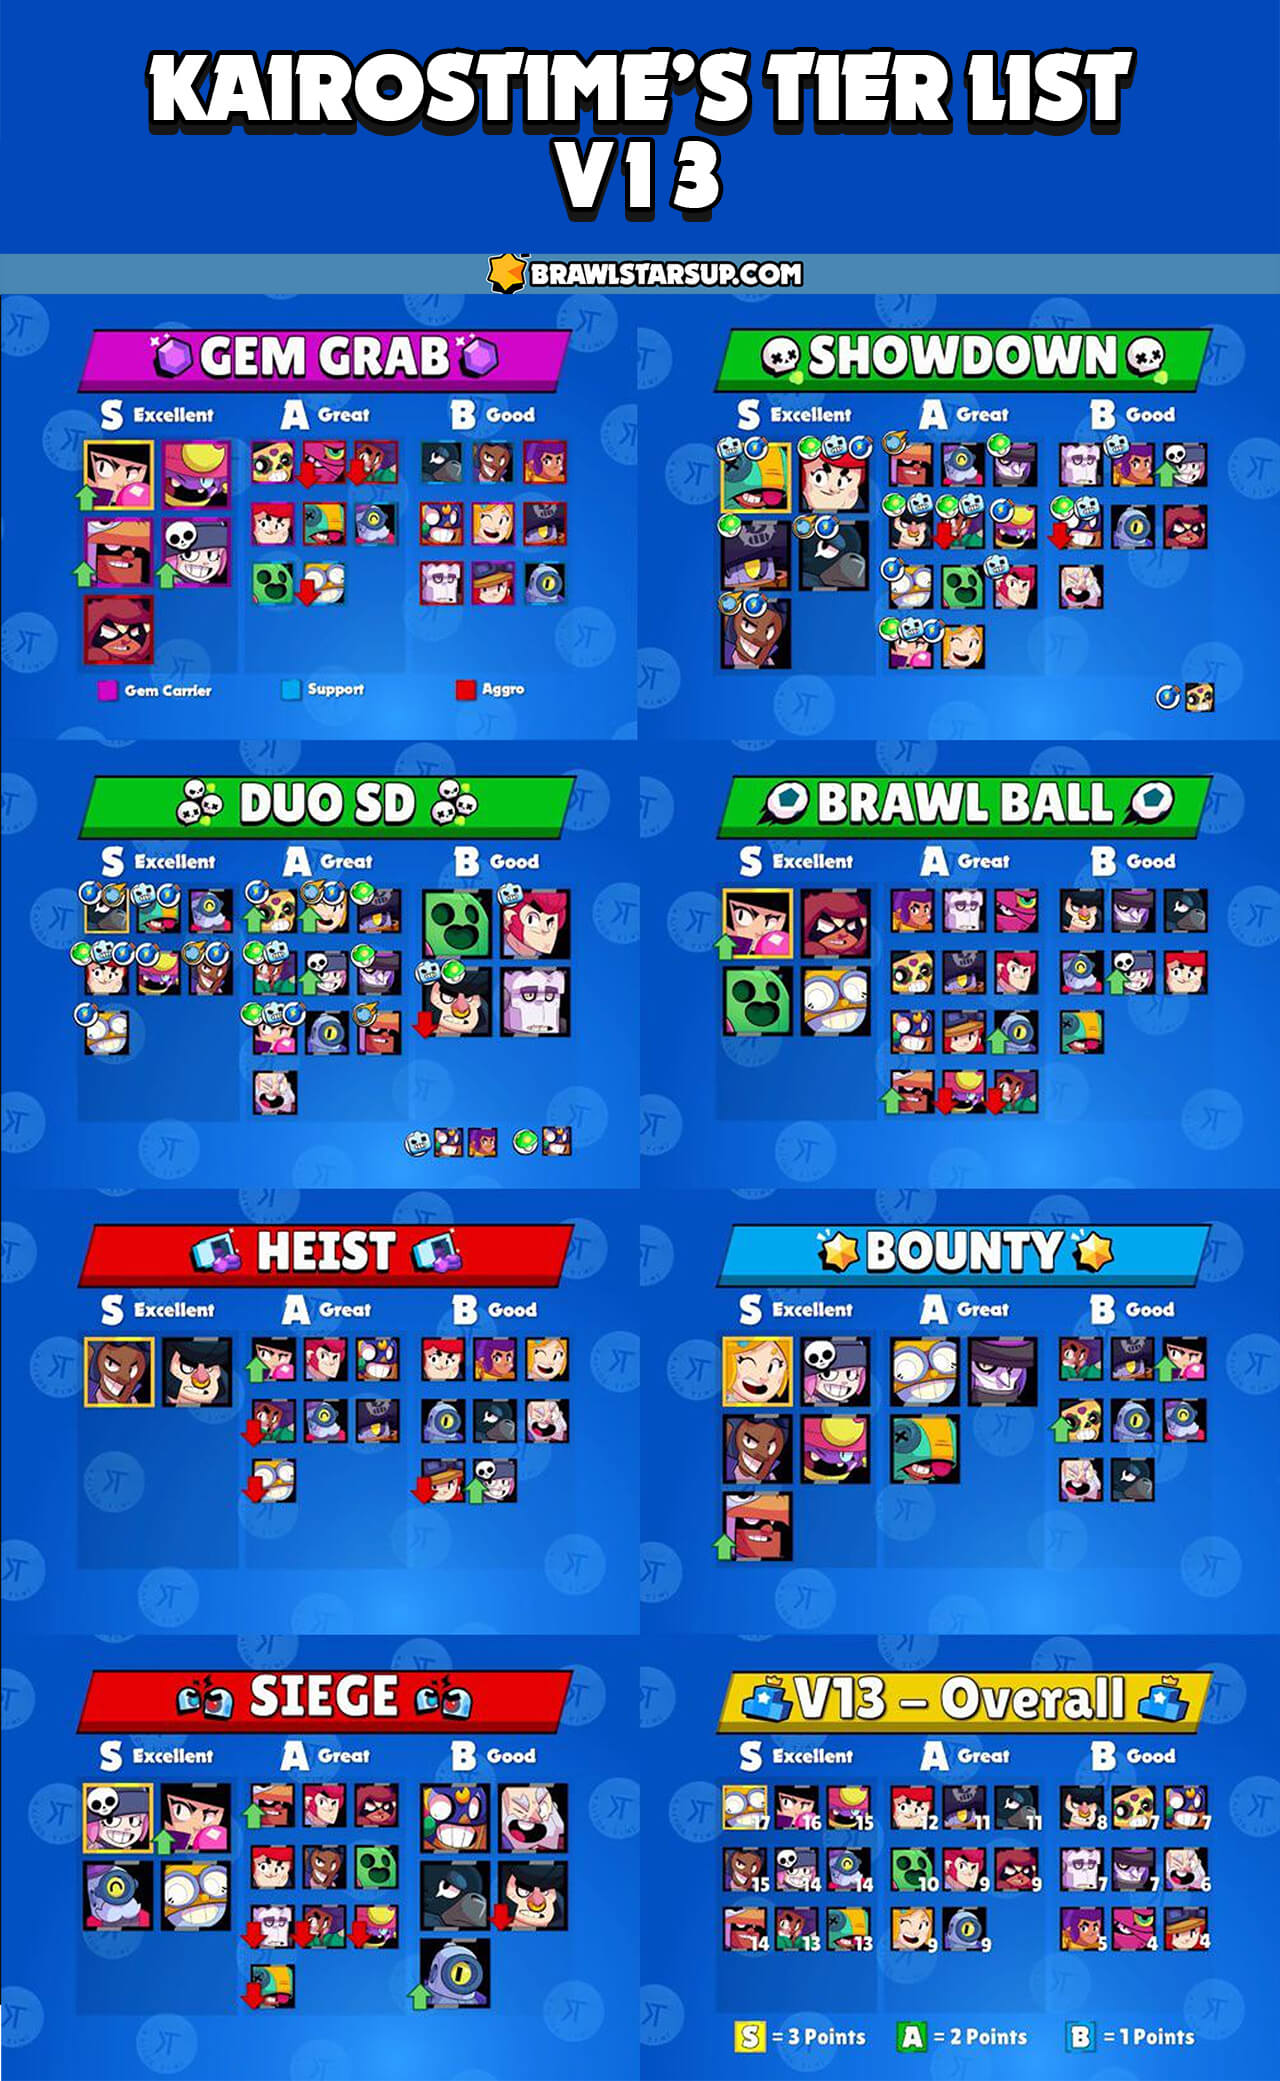 Civ 5 Tier List 2020.Brawl Stars Tier List V13 0 By Kairostime September 2019